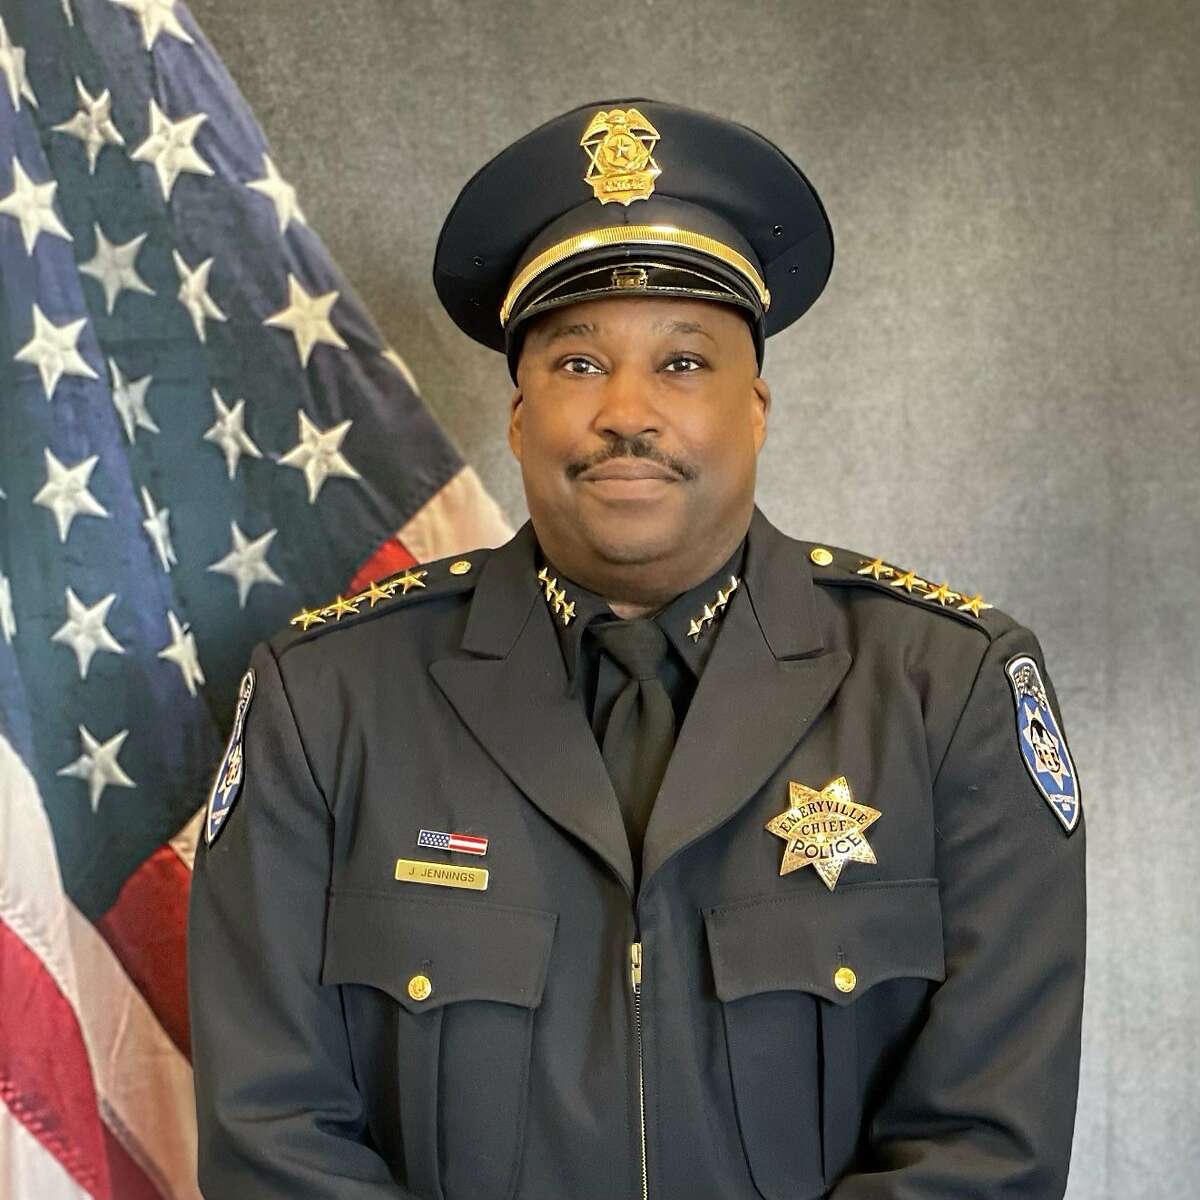 Jeffrey Jennings, a former BART deputy chief, was sworn in this week as Emeryville's newest police chief.